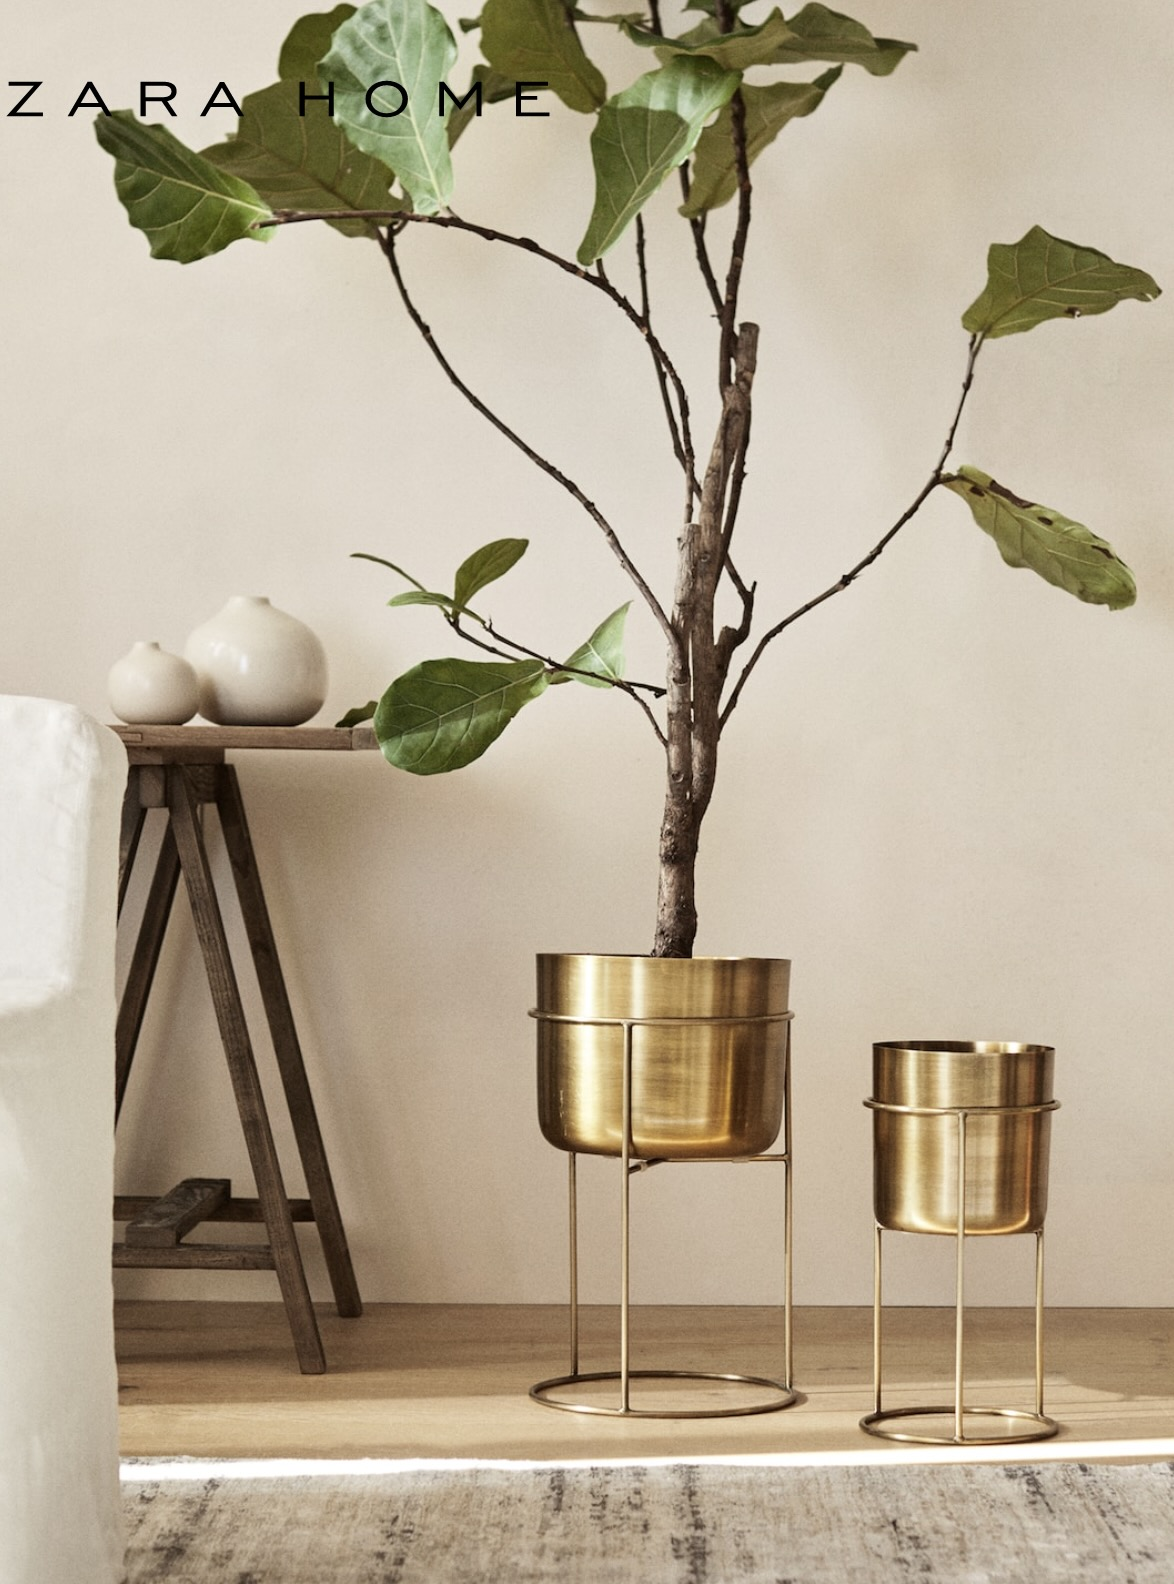 Gold plantar with Plant from Zara Home